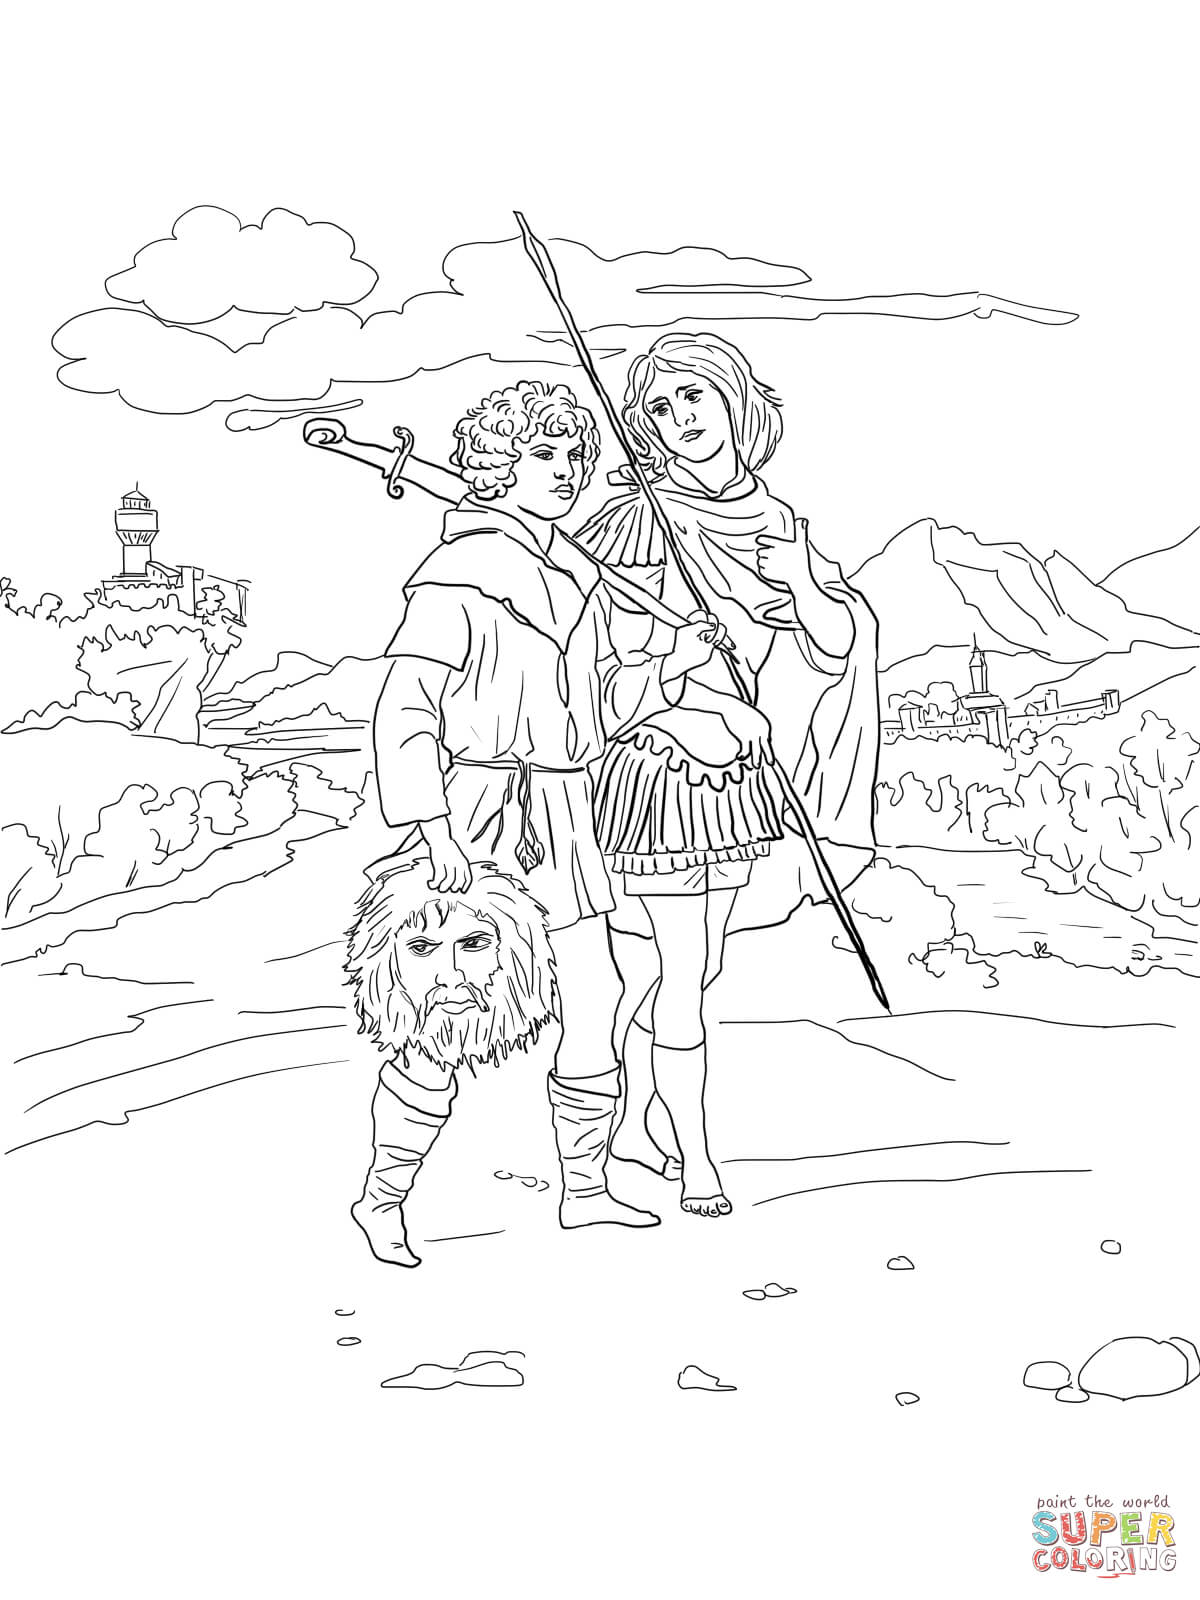 ark of the covenant coloring page ark of the covenant coloring page coloring home page of covenant ark coloring the